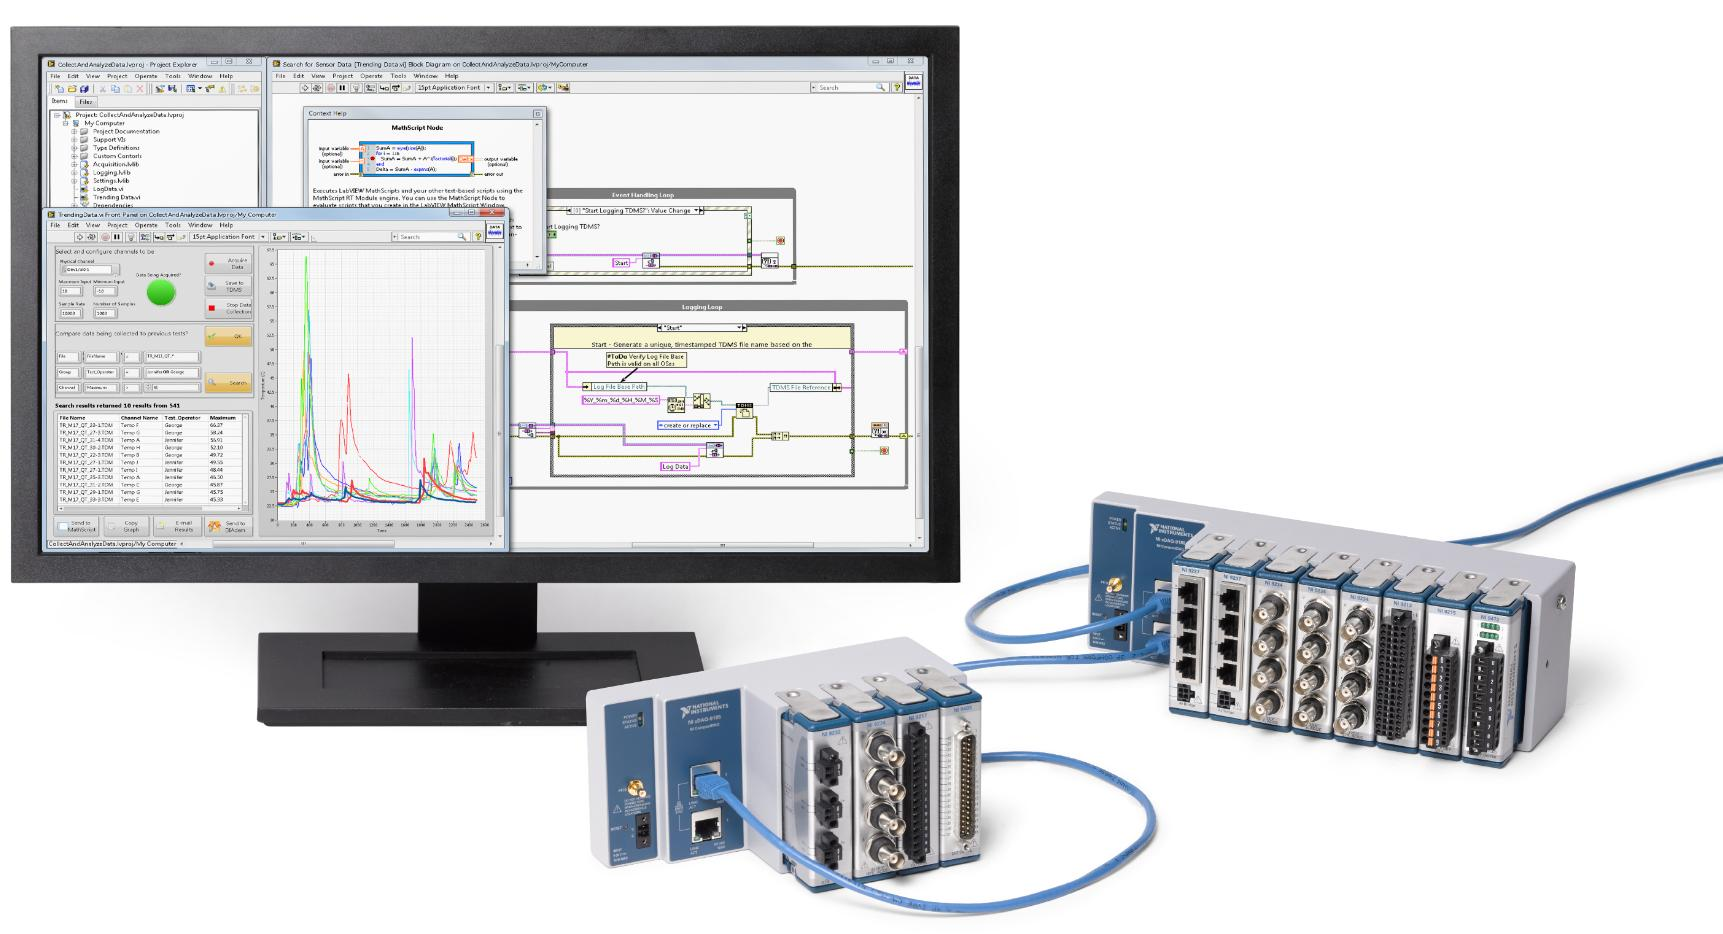 Designing Distributed Tsn Ethernet Based Measurement Systems As Shown For The Electronic Watchdog Circuit It Has Ability Of Compactdaq Is A Portable Rugged Daq Platform That Integrates Connectivity And Signal Conditioning Into Modular I O Directly Interfacing To Any Sensor